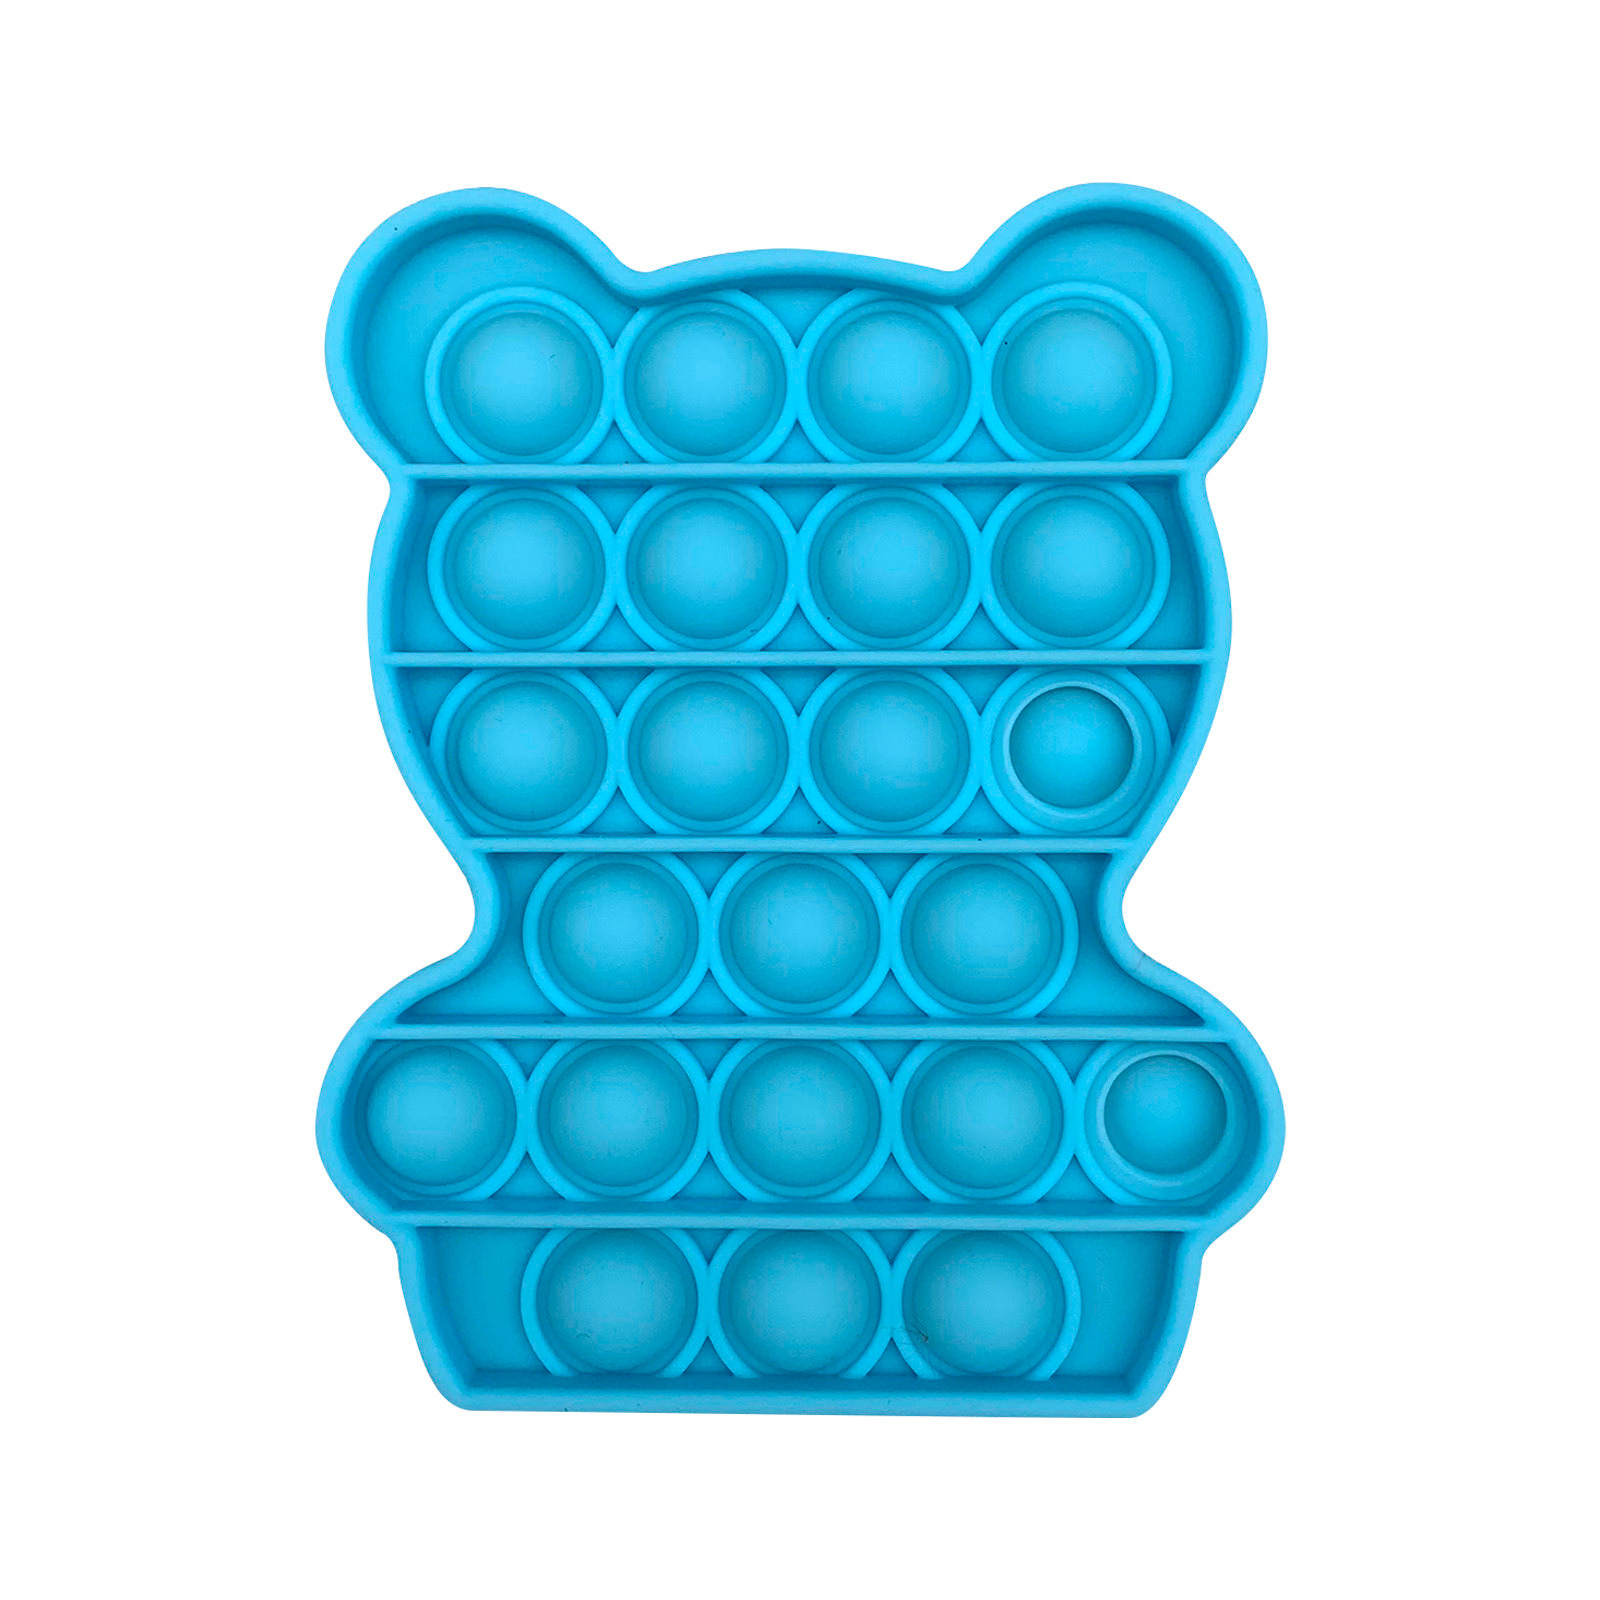 Toy Dimpl-Toy Fidget-Stress Bubble-Sensory Funny Push Squeeze-Toy Reliever Children Kid img4